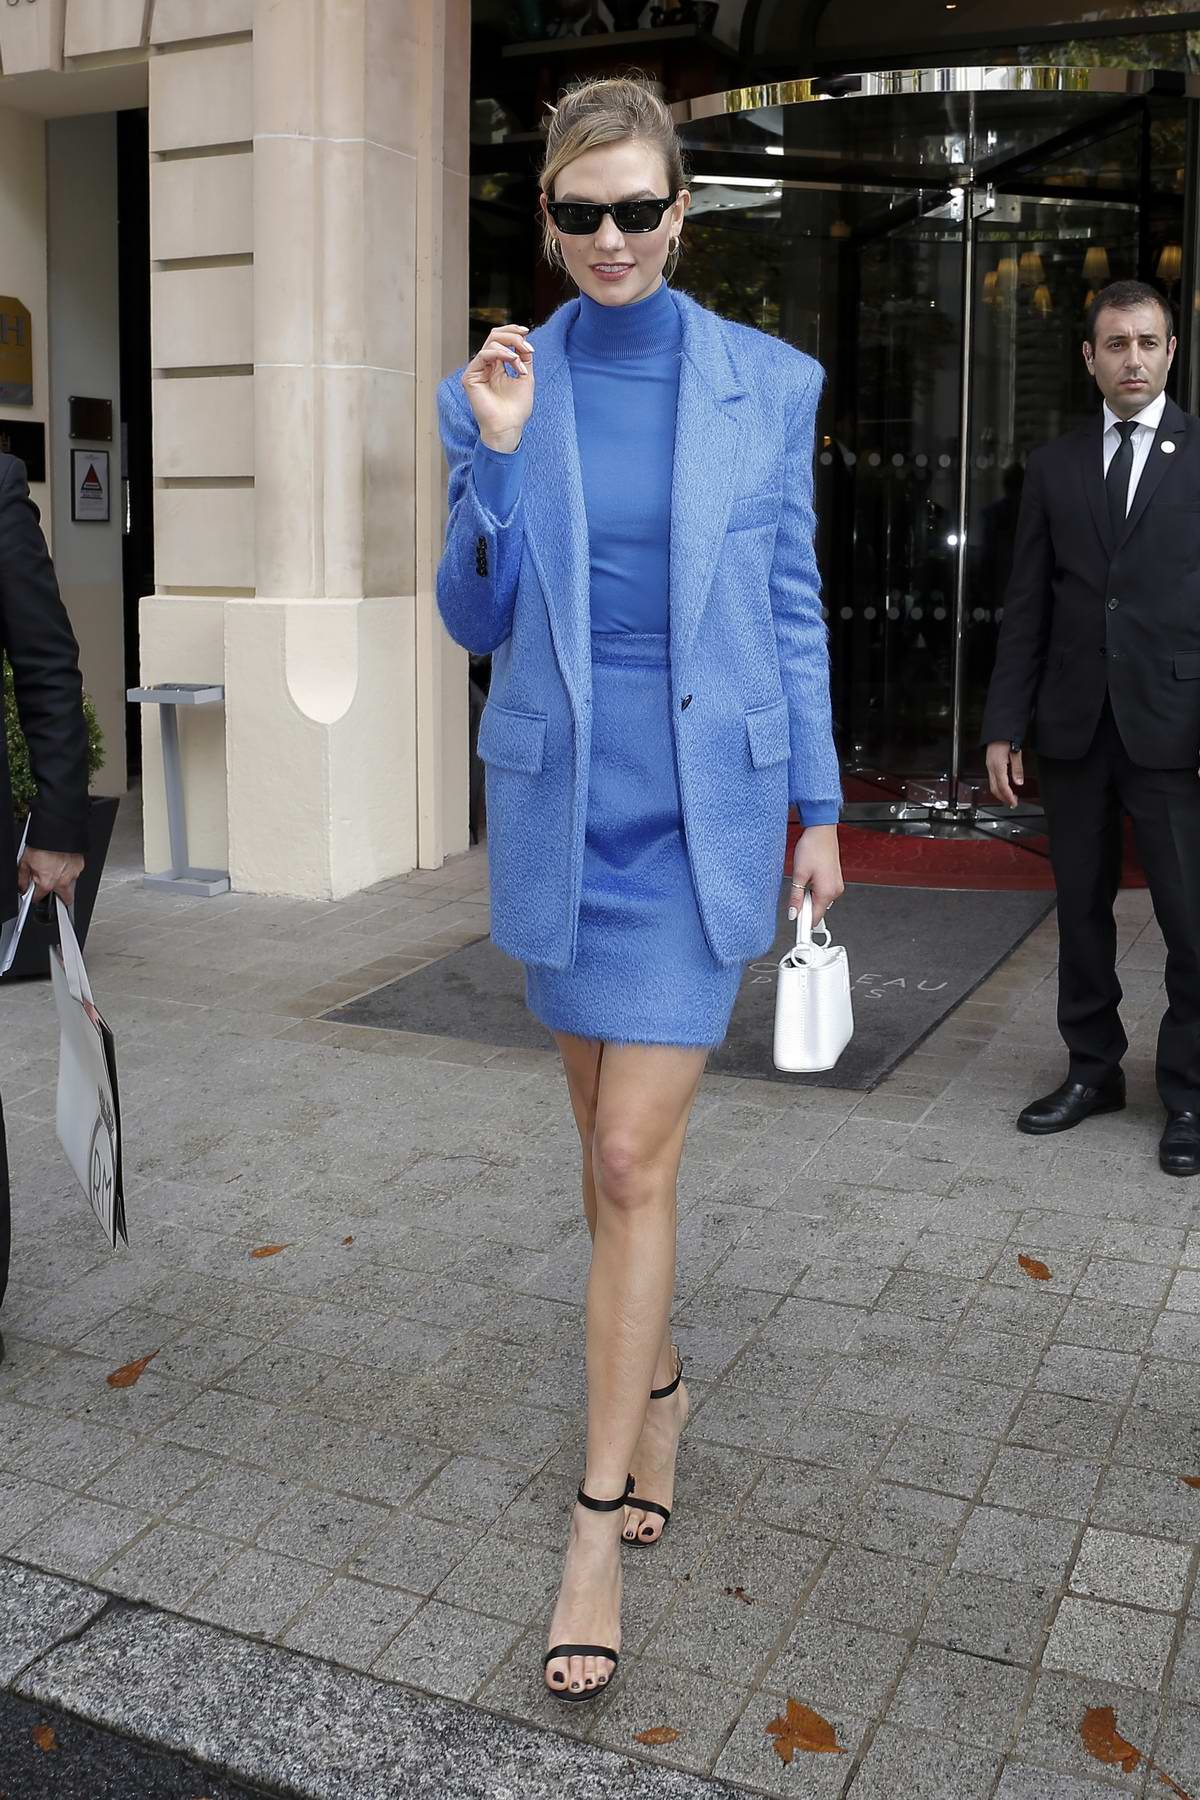 Karlie Kloss looks great in a blue skirt suit as she leaves Royal Monceau hotel during Paris Fashion Week in Paris, France